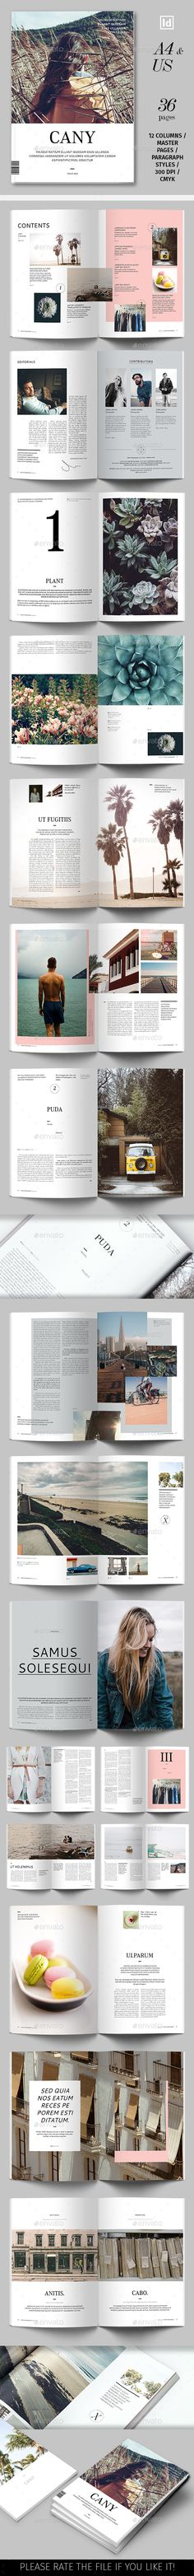 Cany Magazine Template — InDesign INDD #editorial #magazine • Download ➝ https://graphicriver.net/item/cany-magazine-template/19410909?ref=pxcr